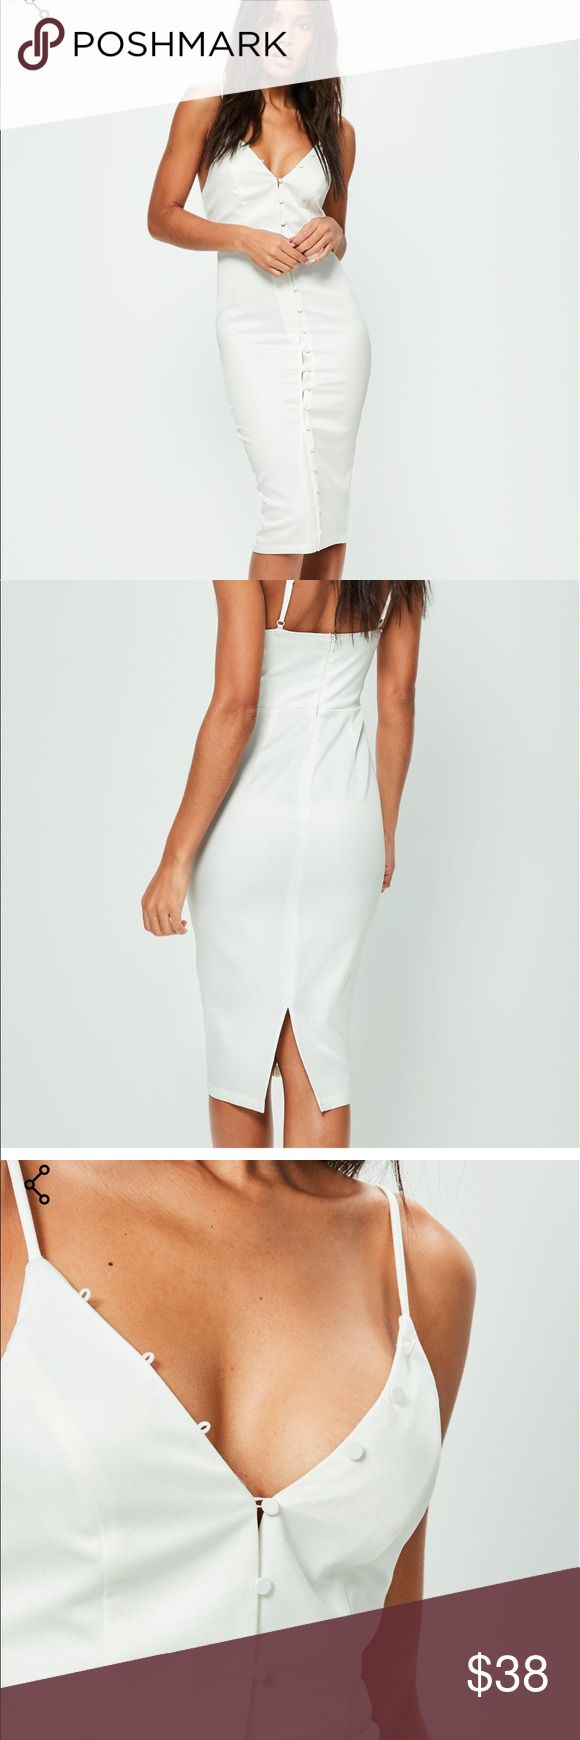 Missguided  white Crepe button detail dress BNWOT Missguided white knee length button detail dress. Sz 6 Missguided Dresses Midi